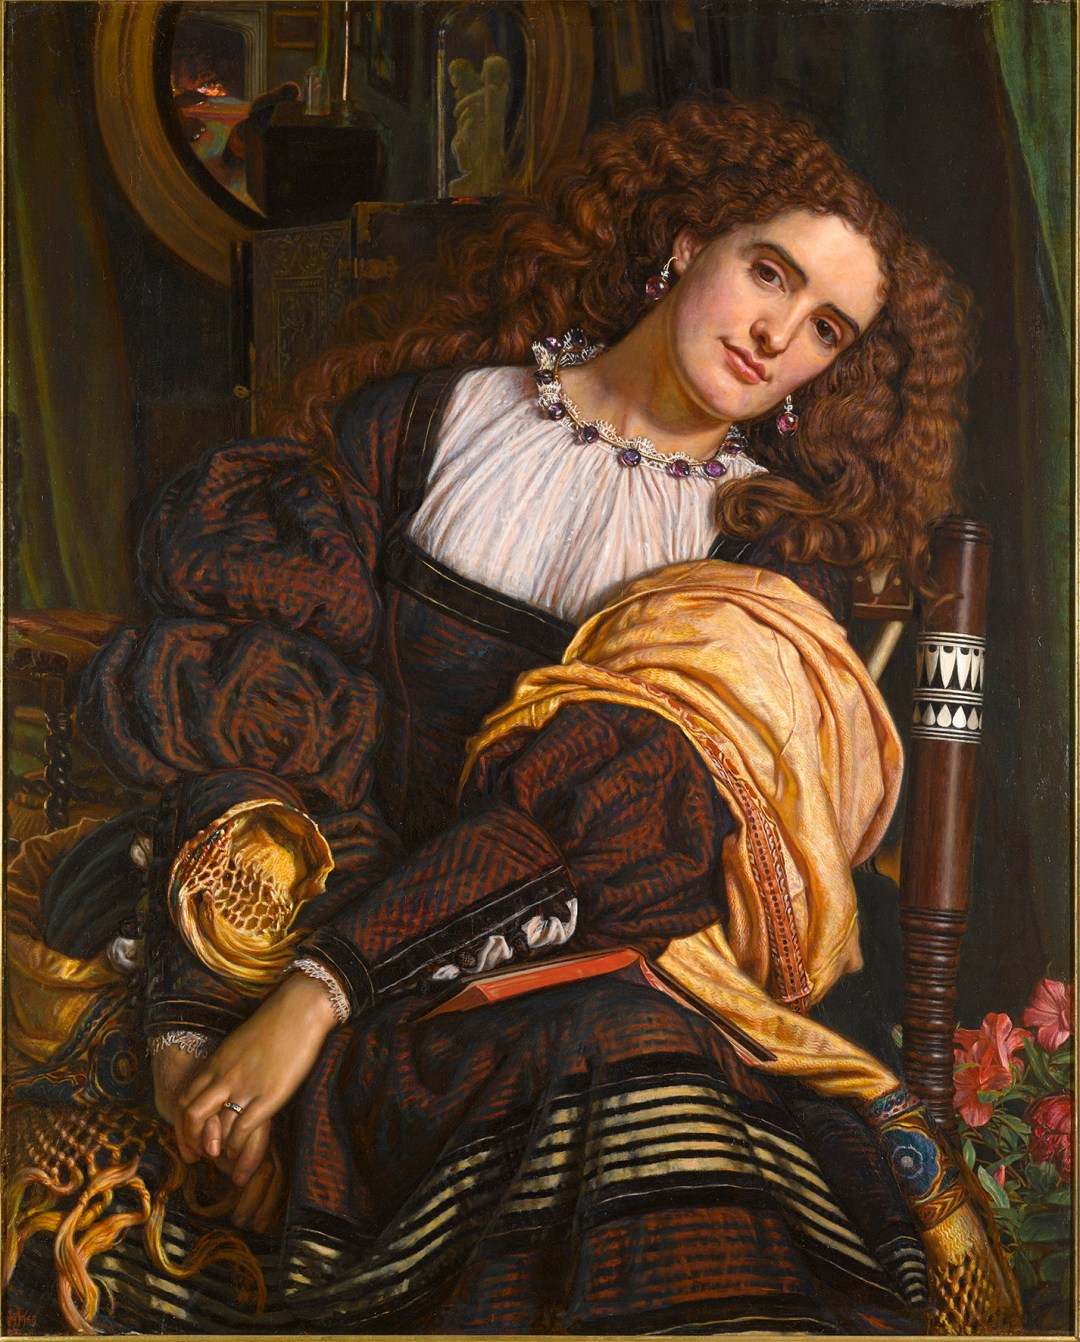 William Holman Hunt, Il Dolce Far Niente, 1866, Oil on canvas, Private collection © Photo courtesy of the owner